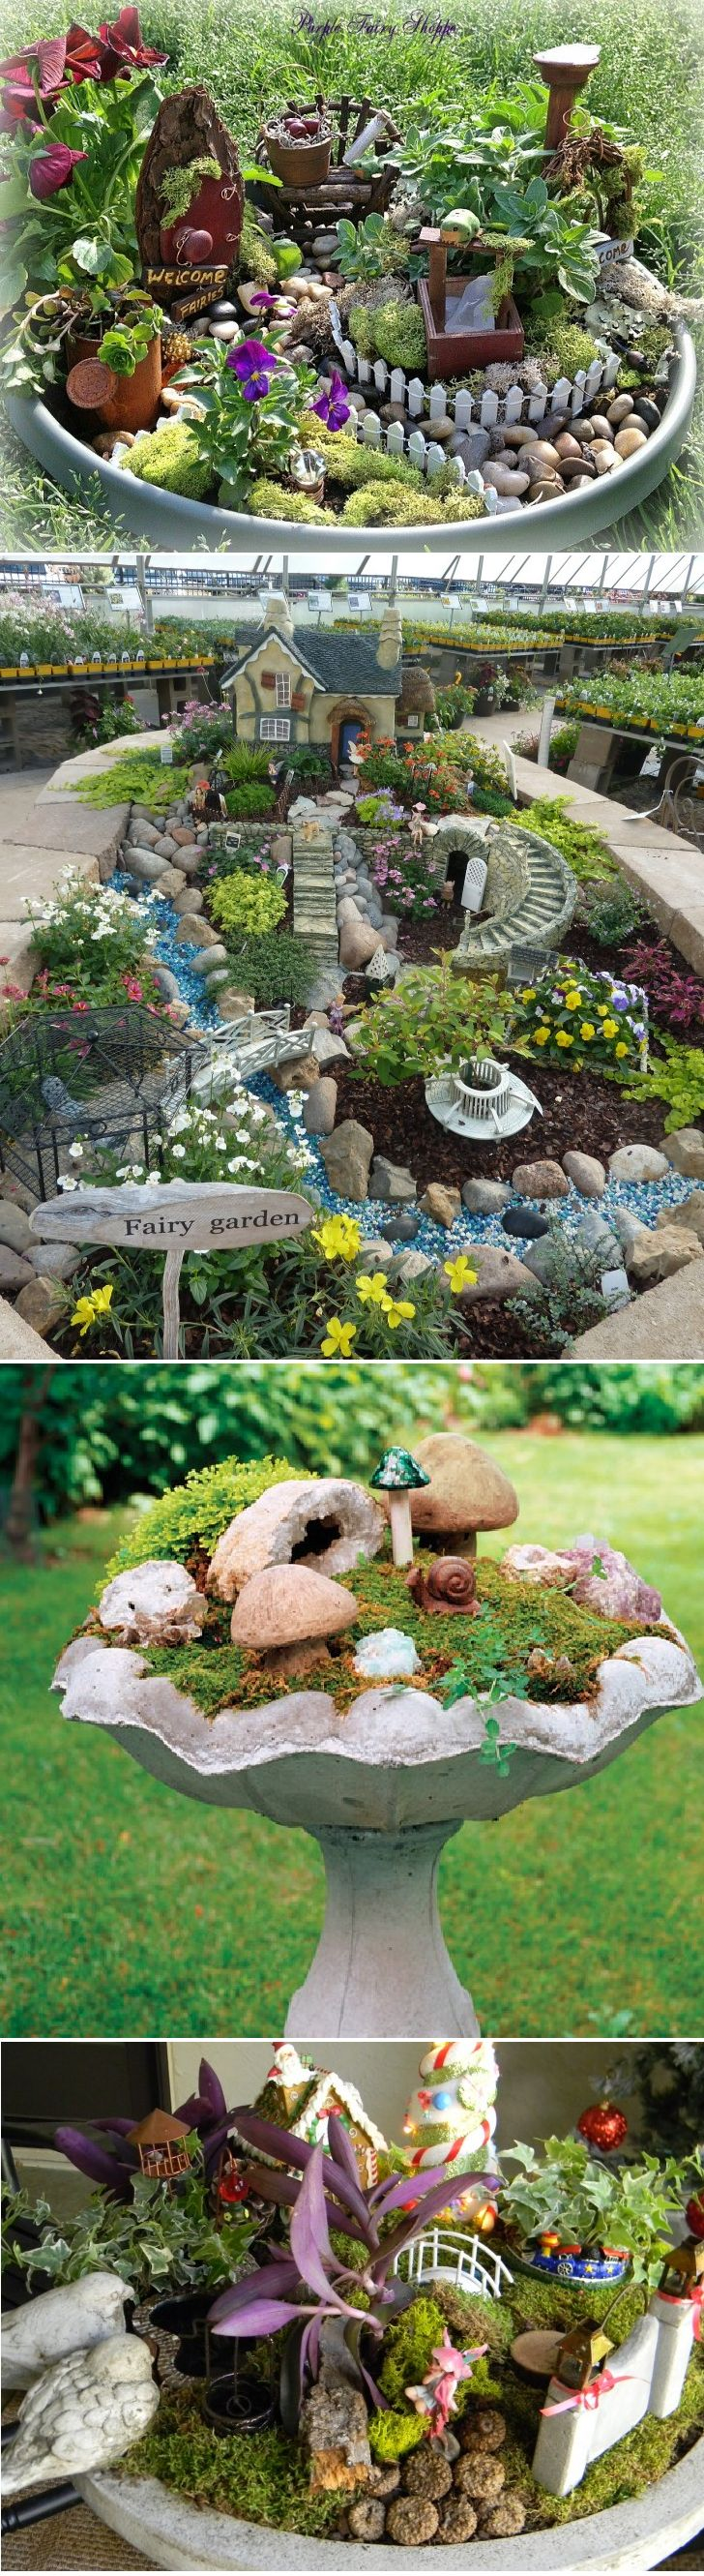 1000 Ideas About Miniature Gardens On Pinterest Fairy Gardening